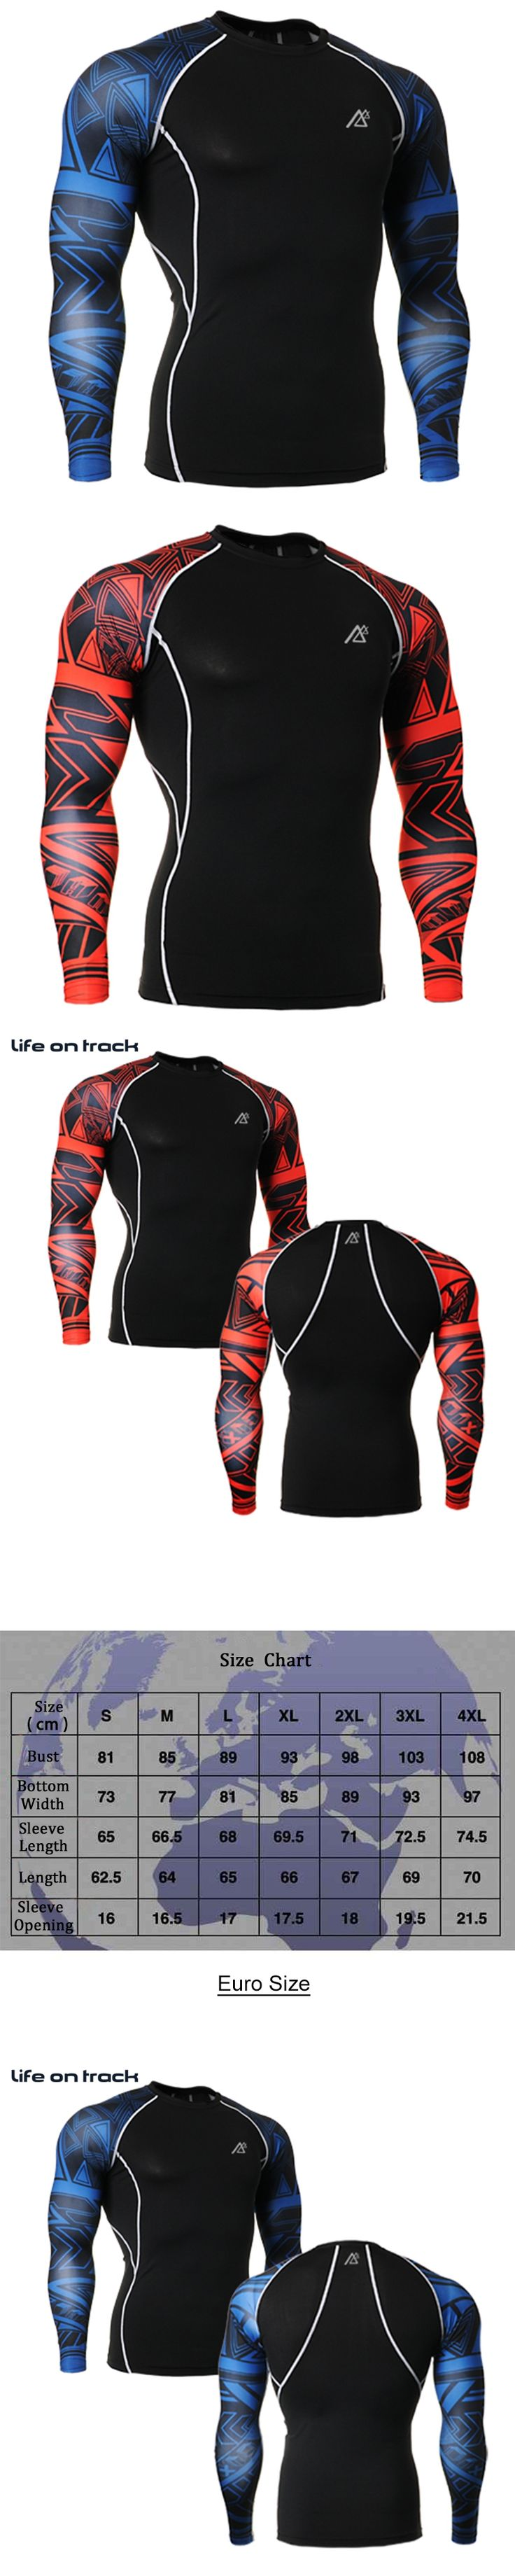 2016 Sports Athletic Build Men's T-shirt Tight-Fitting Bodybuilding Plus Size Stretch Anti-Sweat Long Sleeve Tshirts Hot Sale